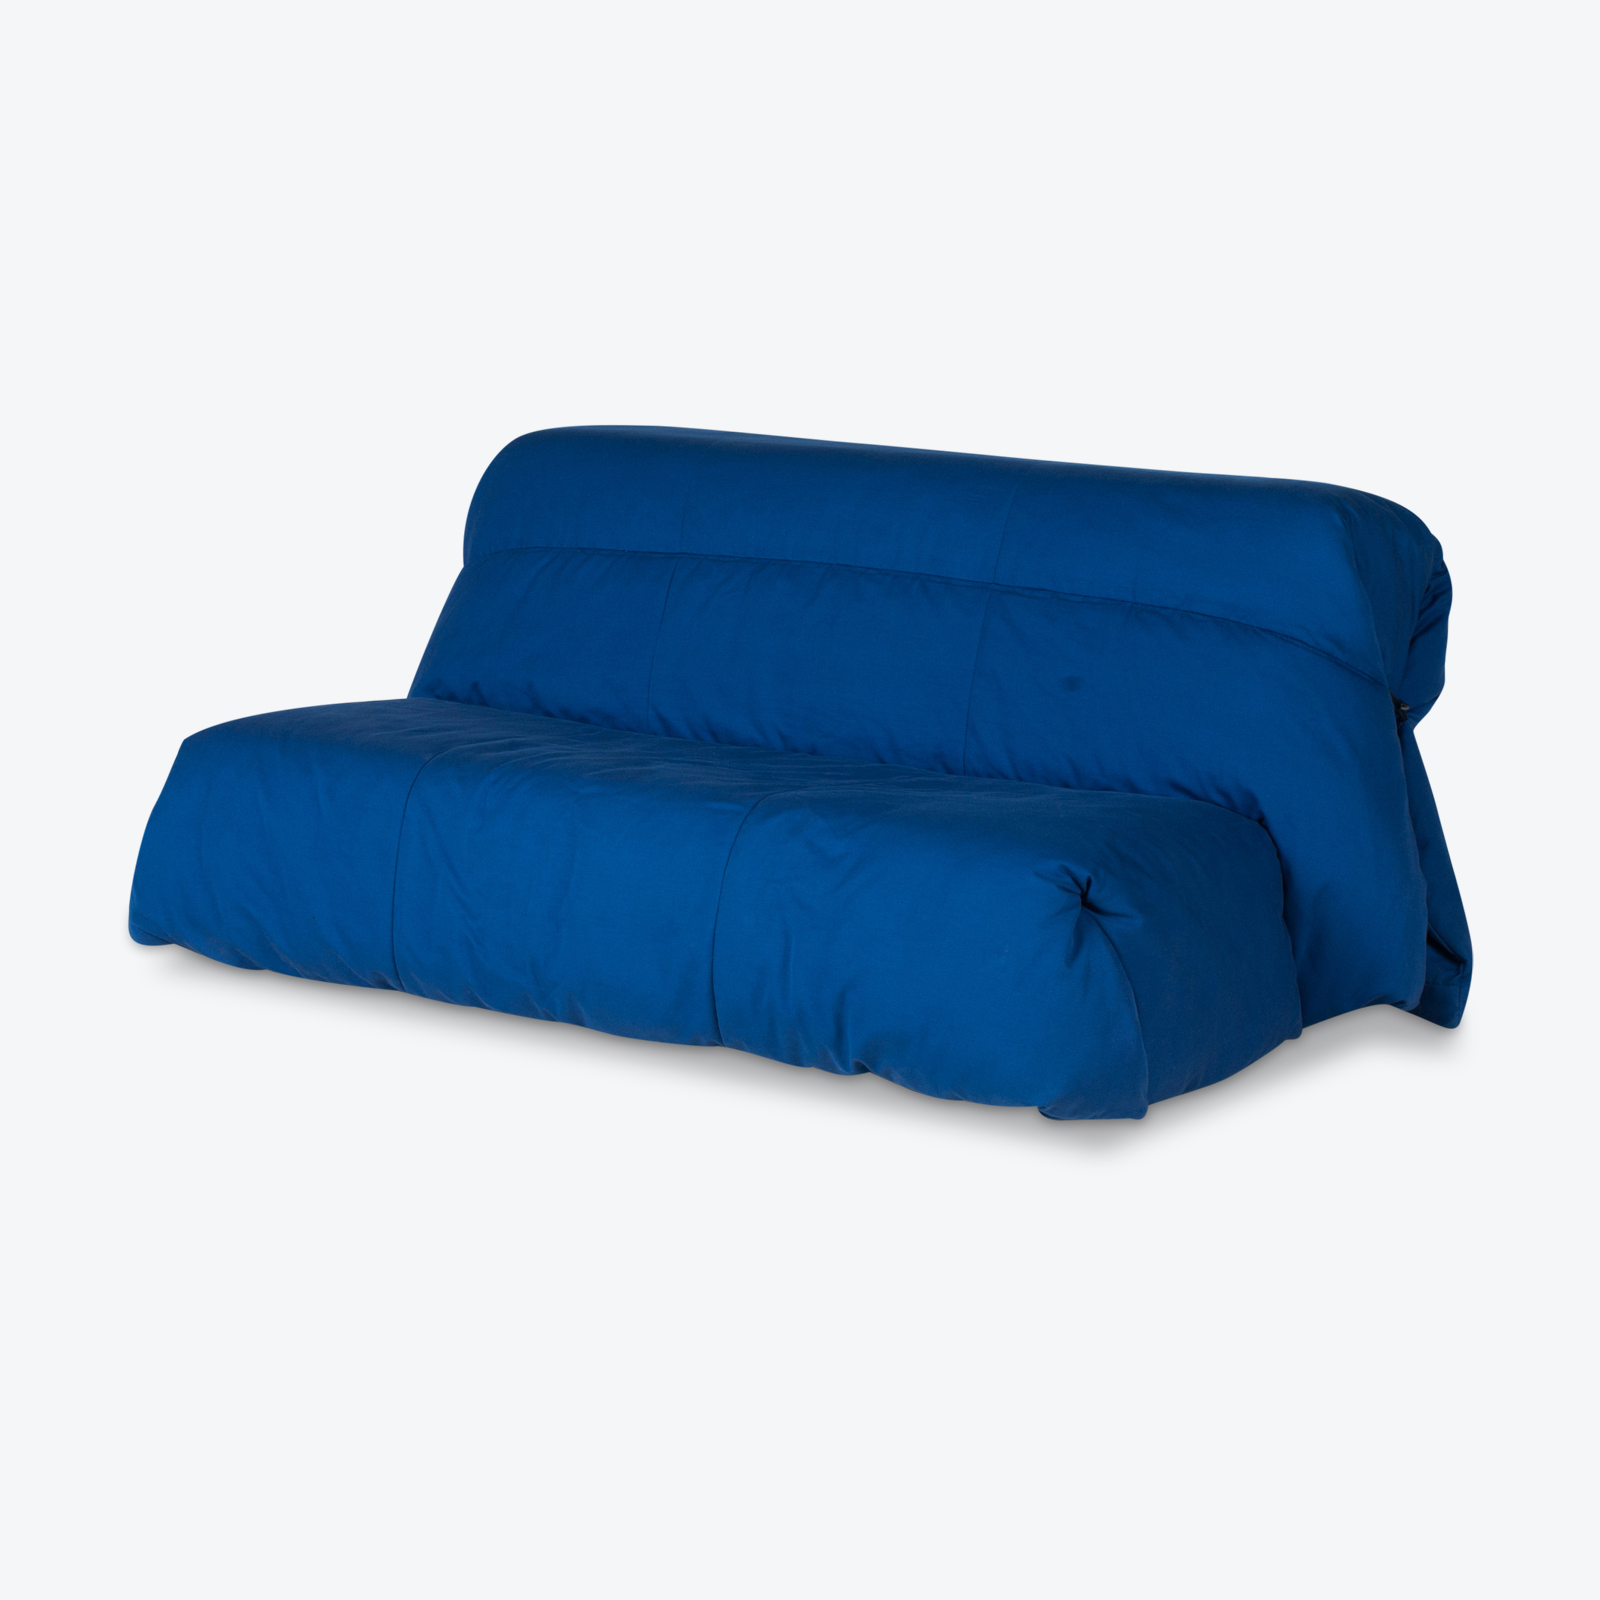 Sofa Bed By Ligne Roset In Blue Upholstery, 1960s, France Hero